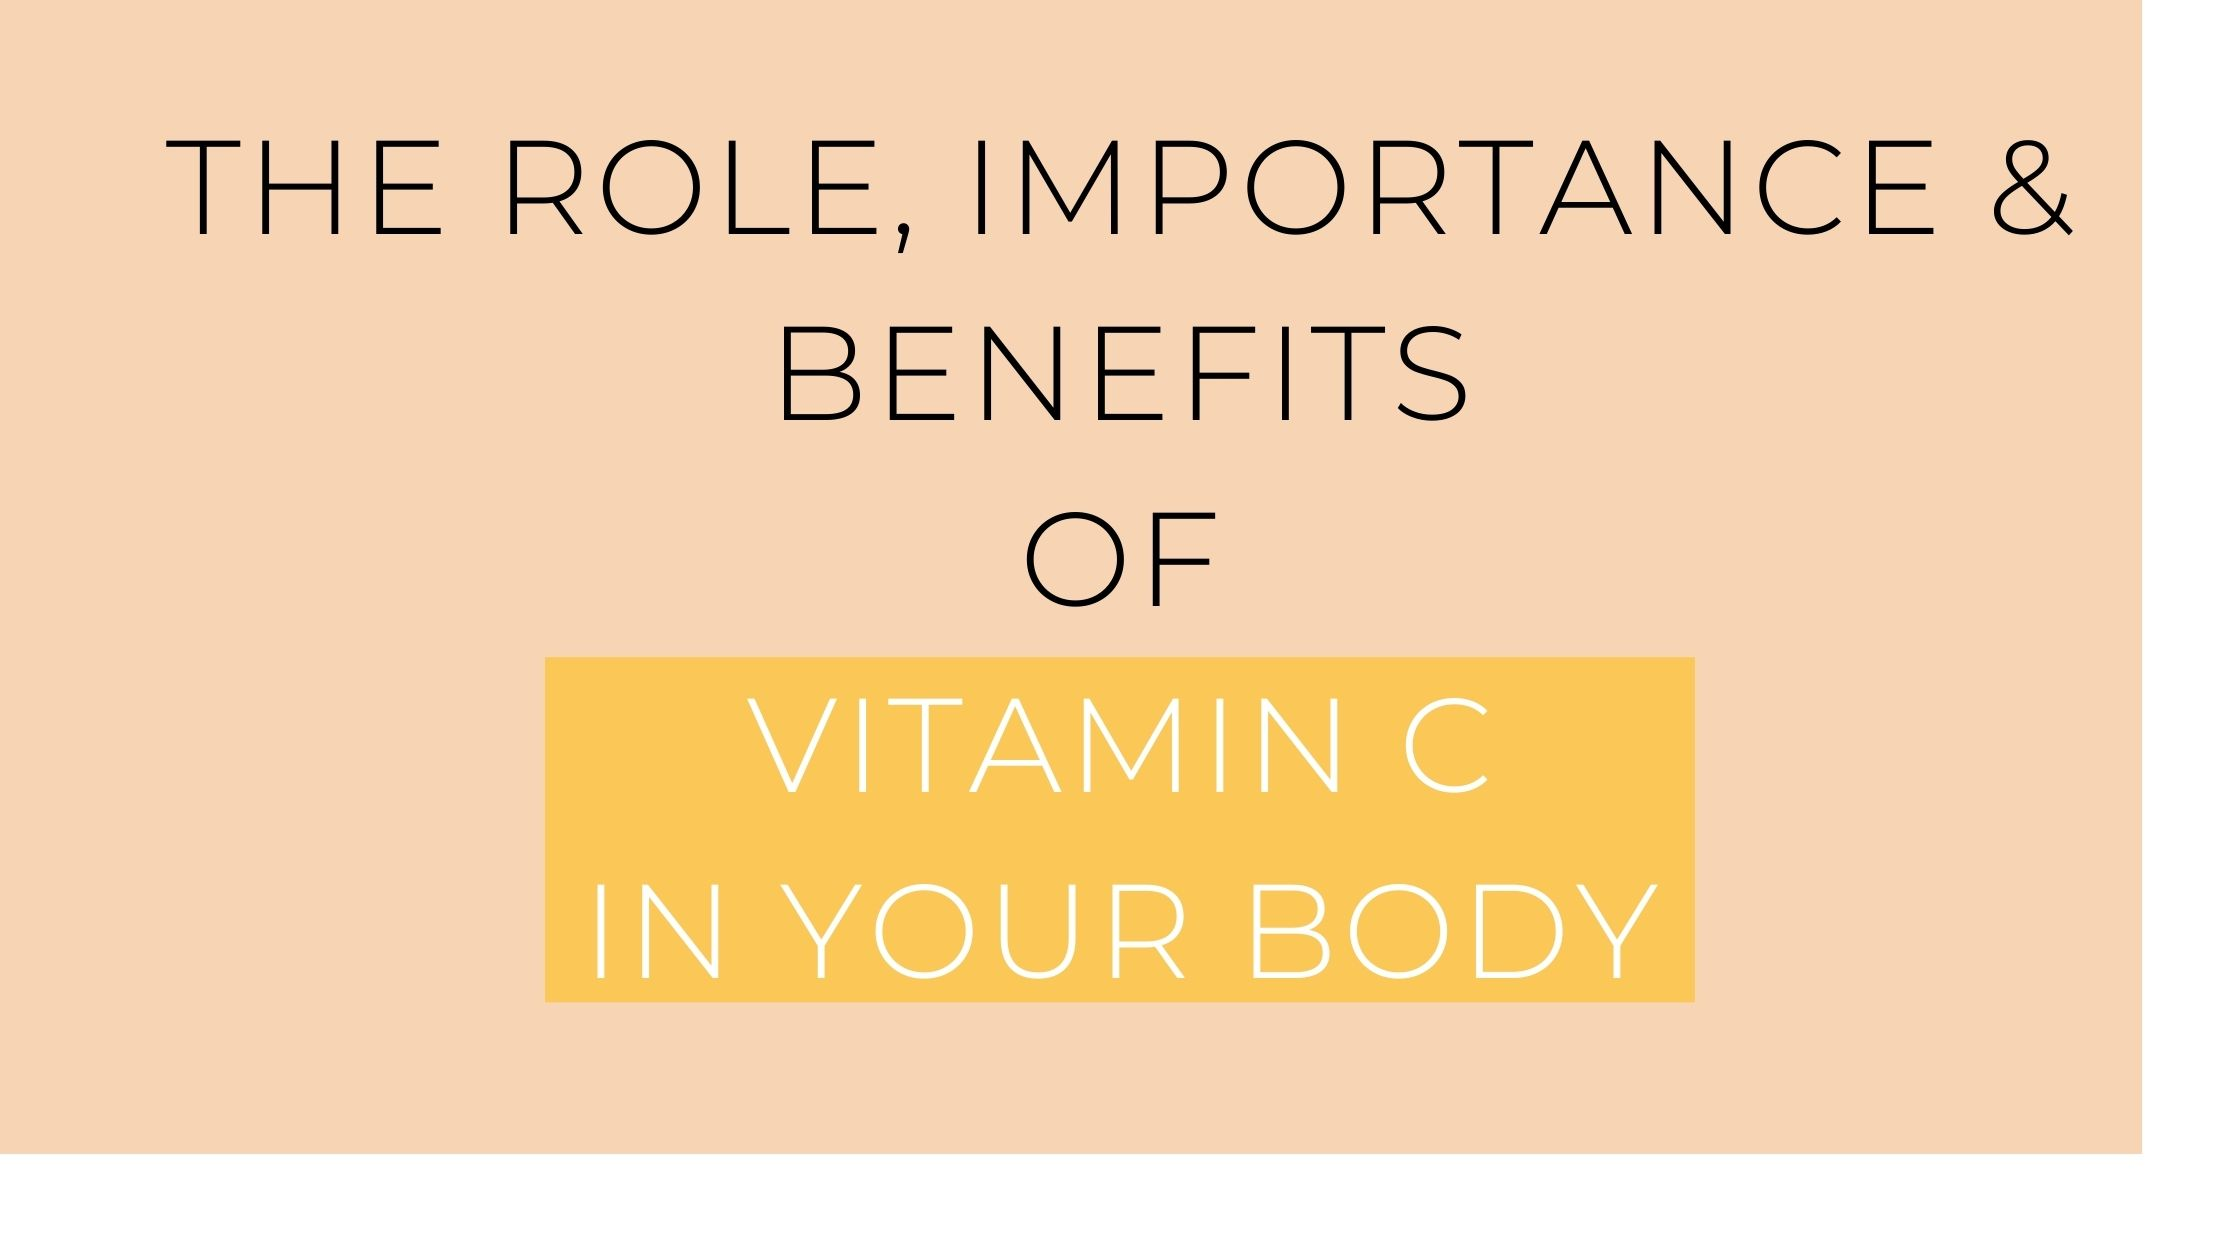 The Role, Importance & Benefits of Vitamin C in your Body